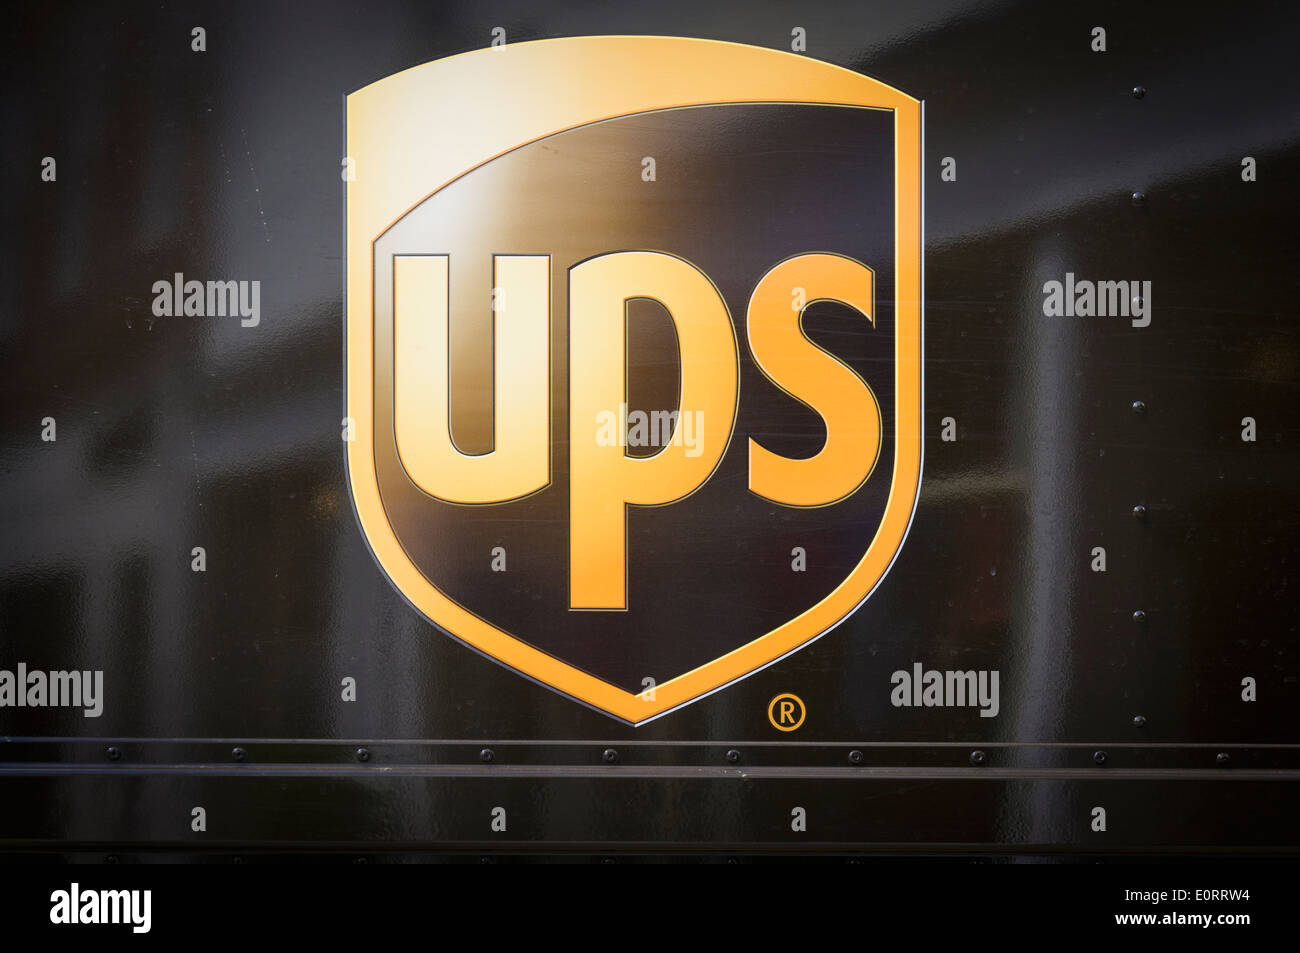 UPS logo on the side of a delivery van - Stock Image